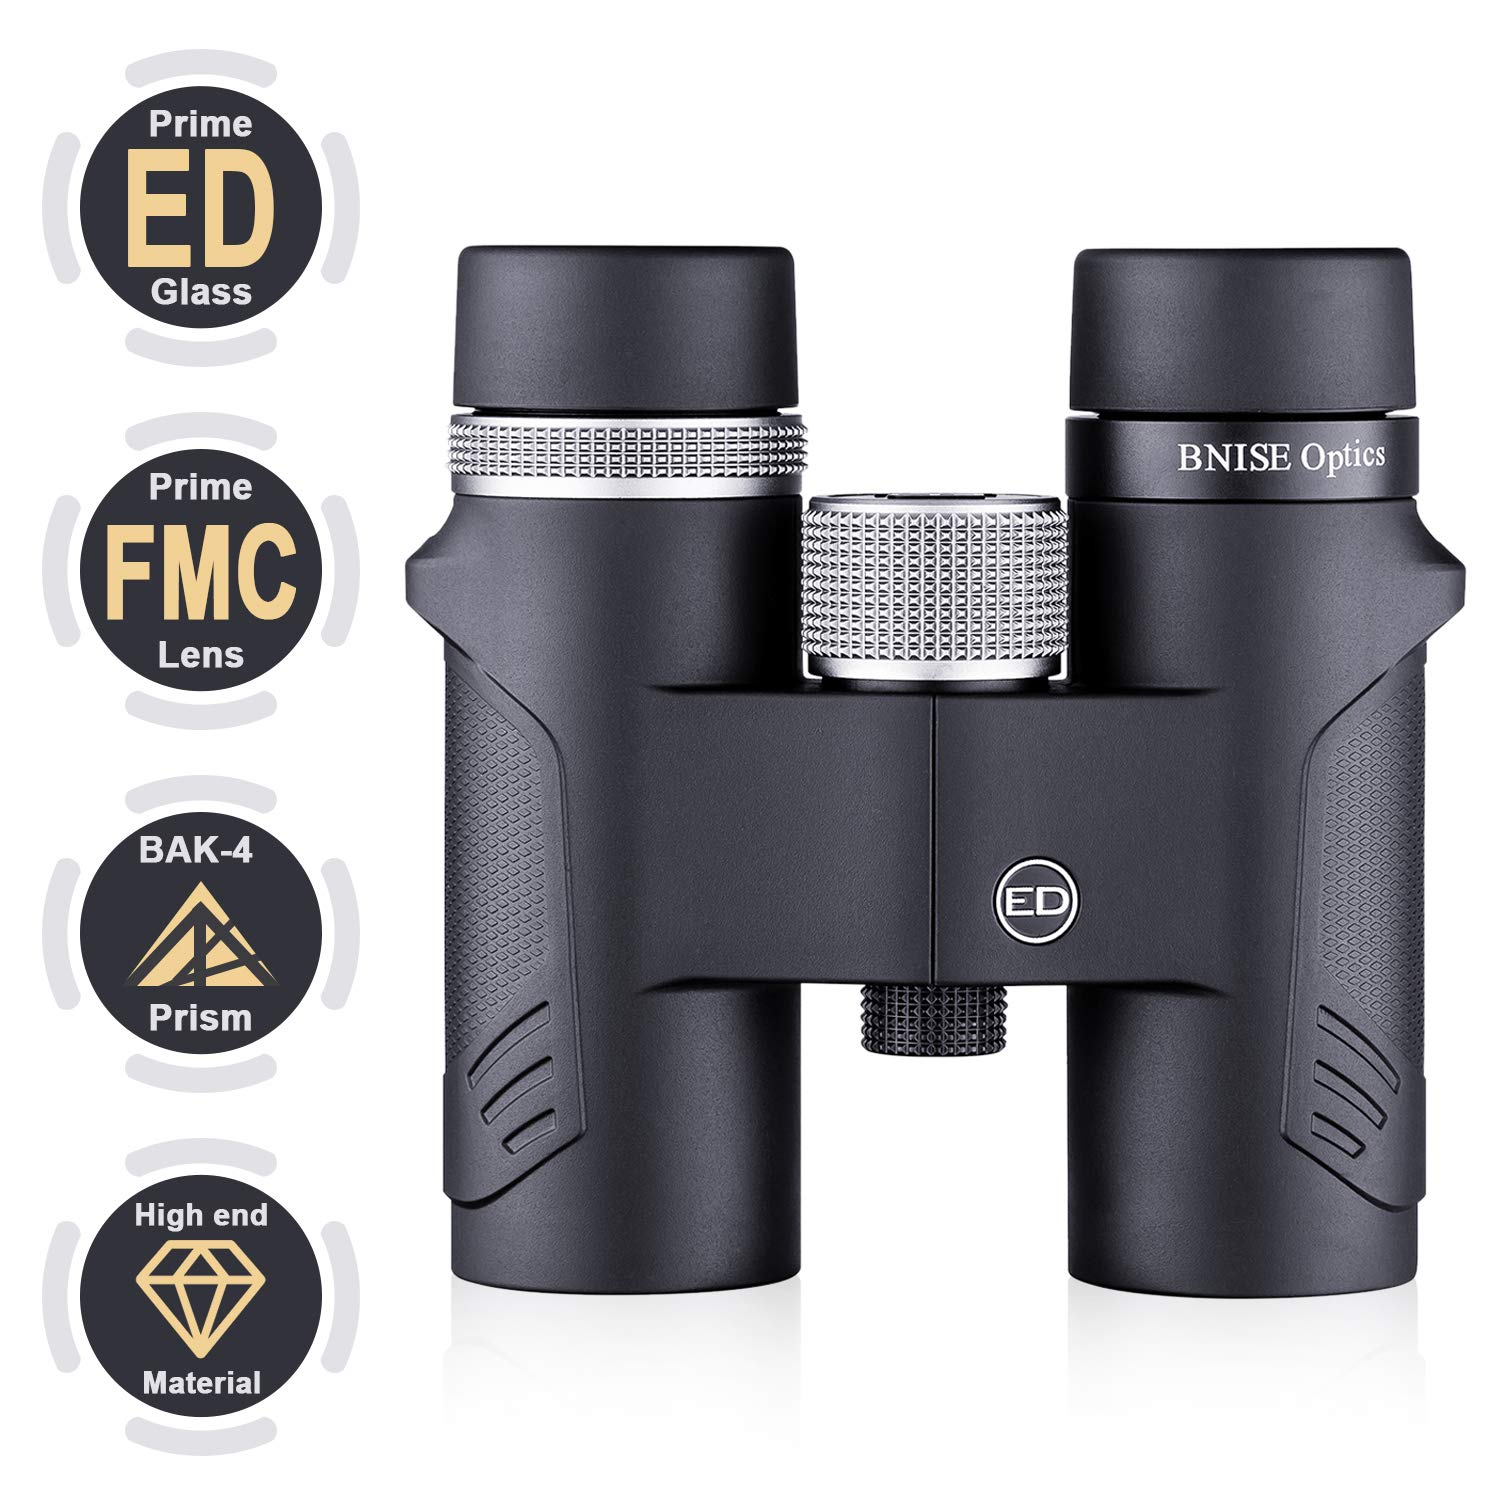 BNISE 8×32 ED Binoculars for Adults and Kids, Compact and Lightweight Design, with BAK-4 Prism and Fully Broadband Multi-Coated Lens, Suitable for Bird Watching, Hunting and Stargazing